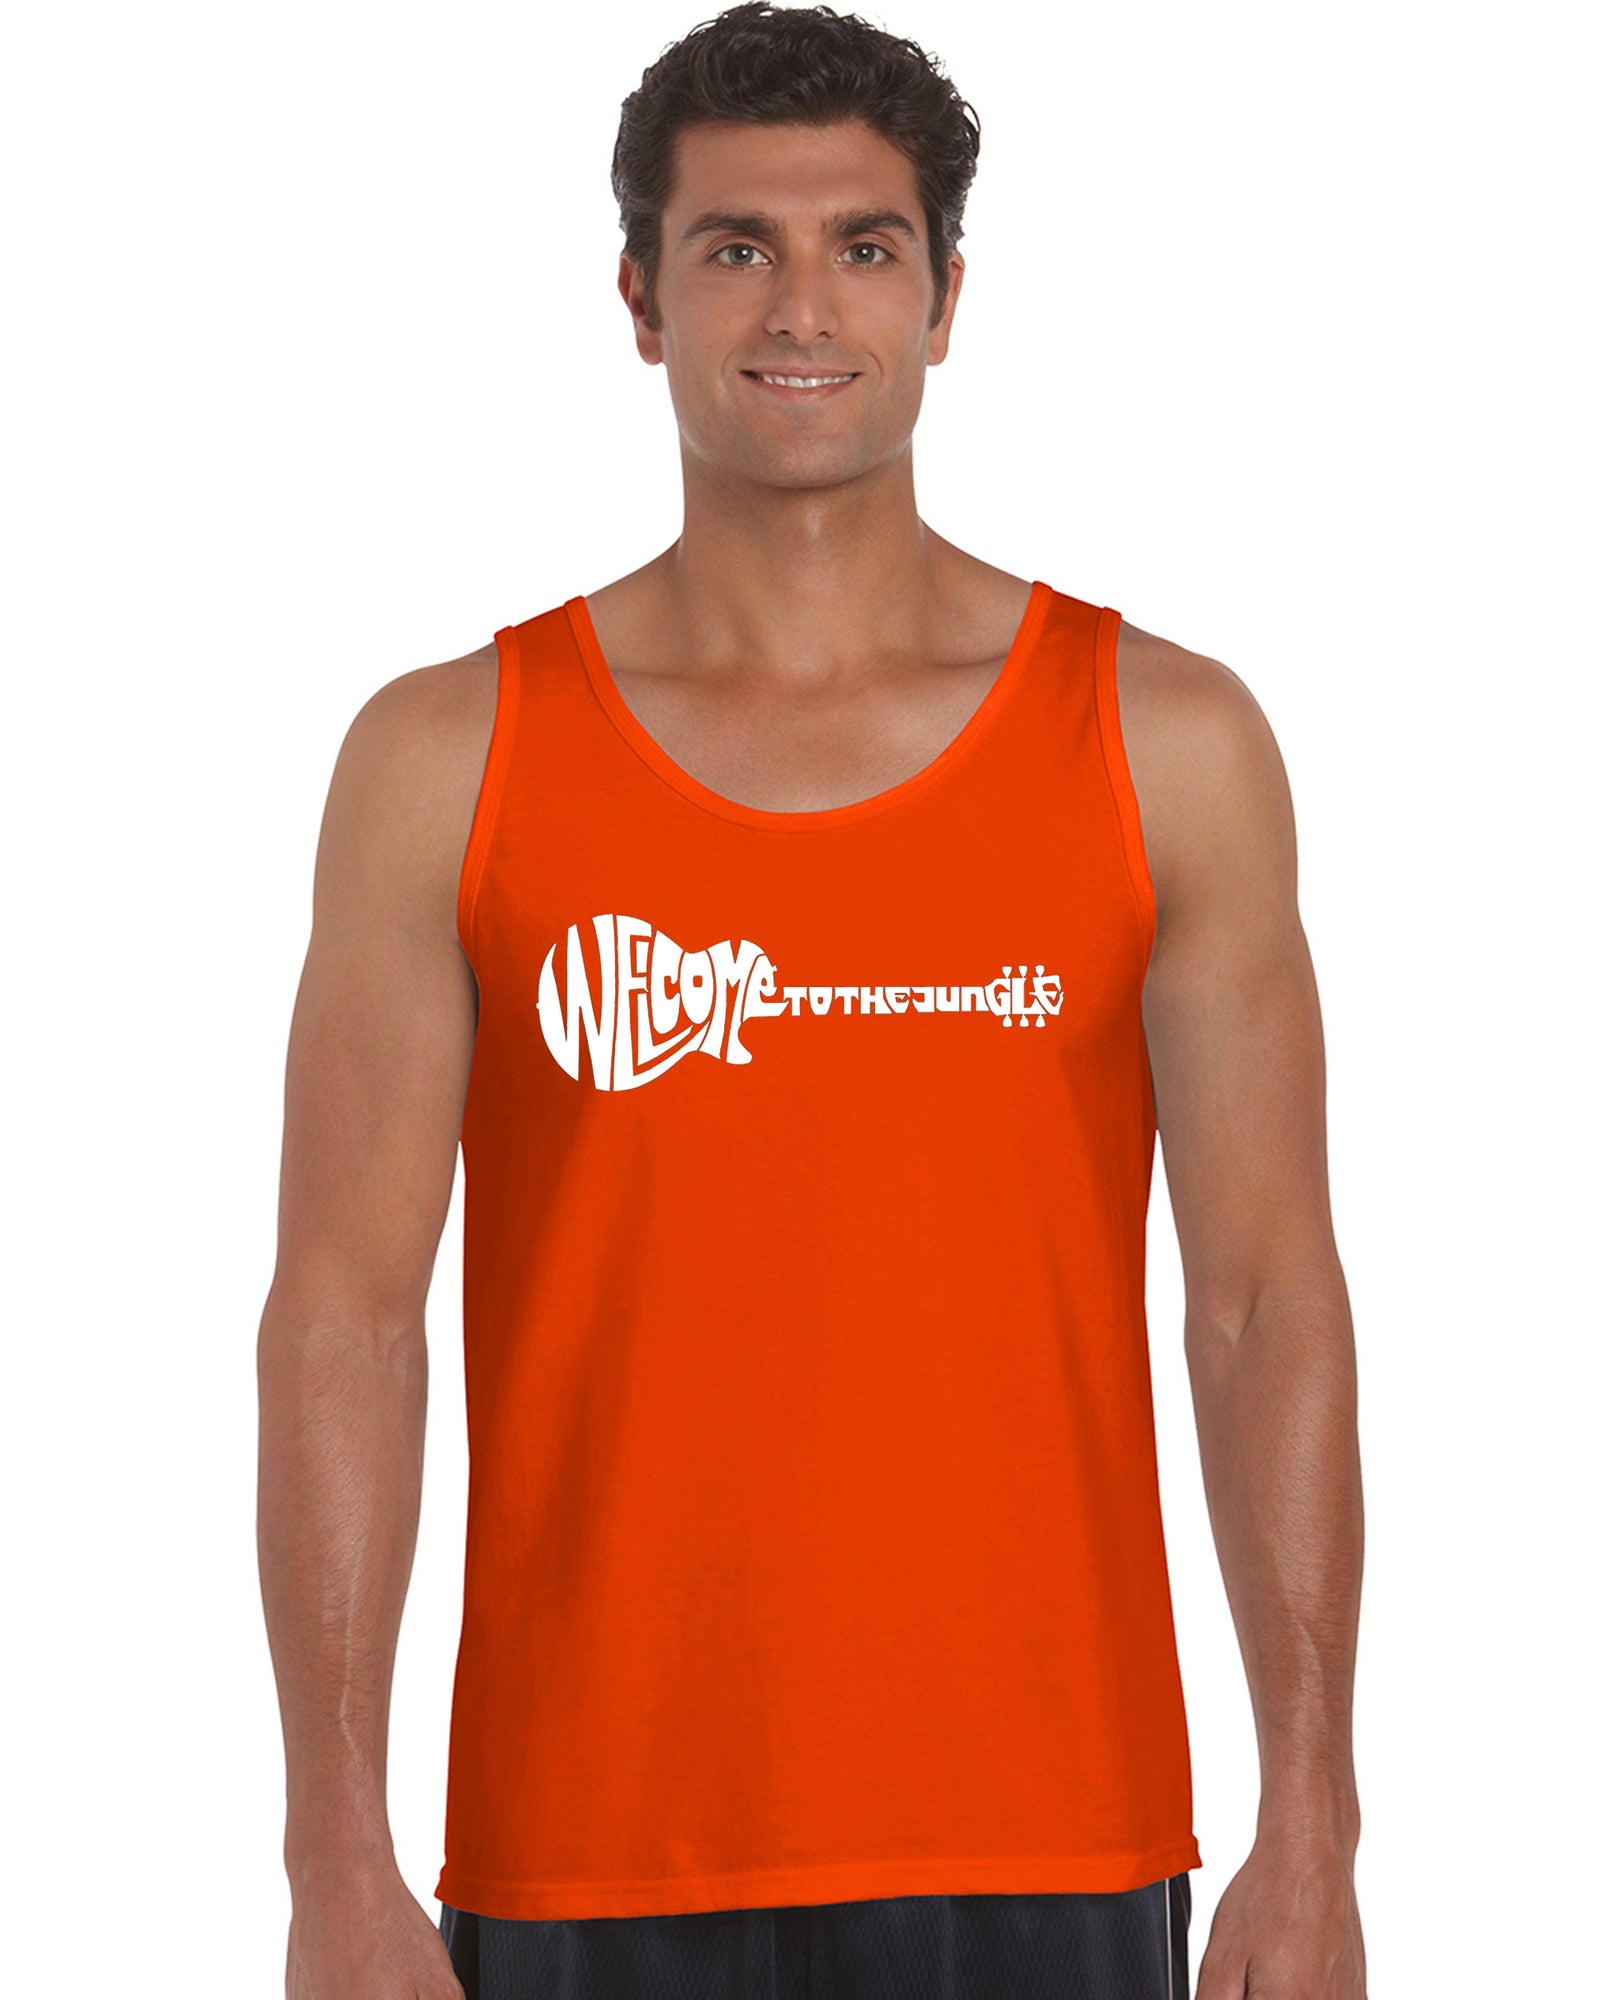 Mens Tank Top  - Welcome to the Jungle